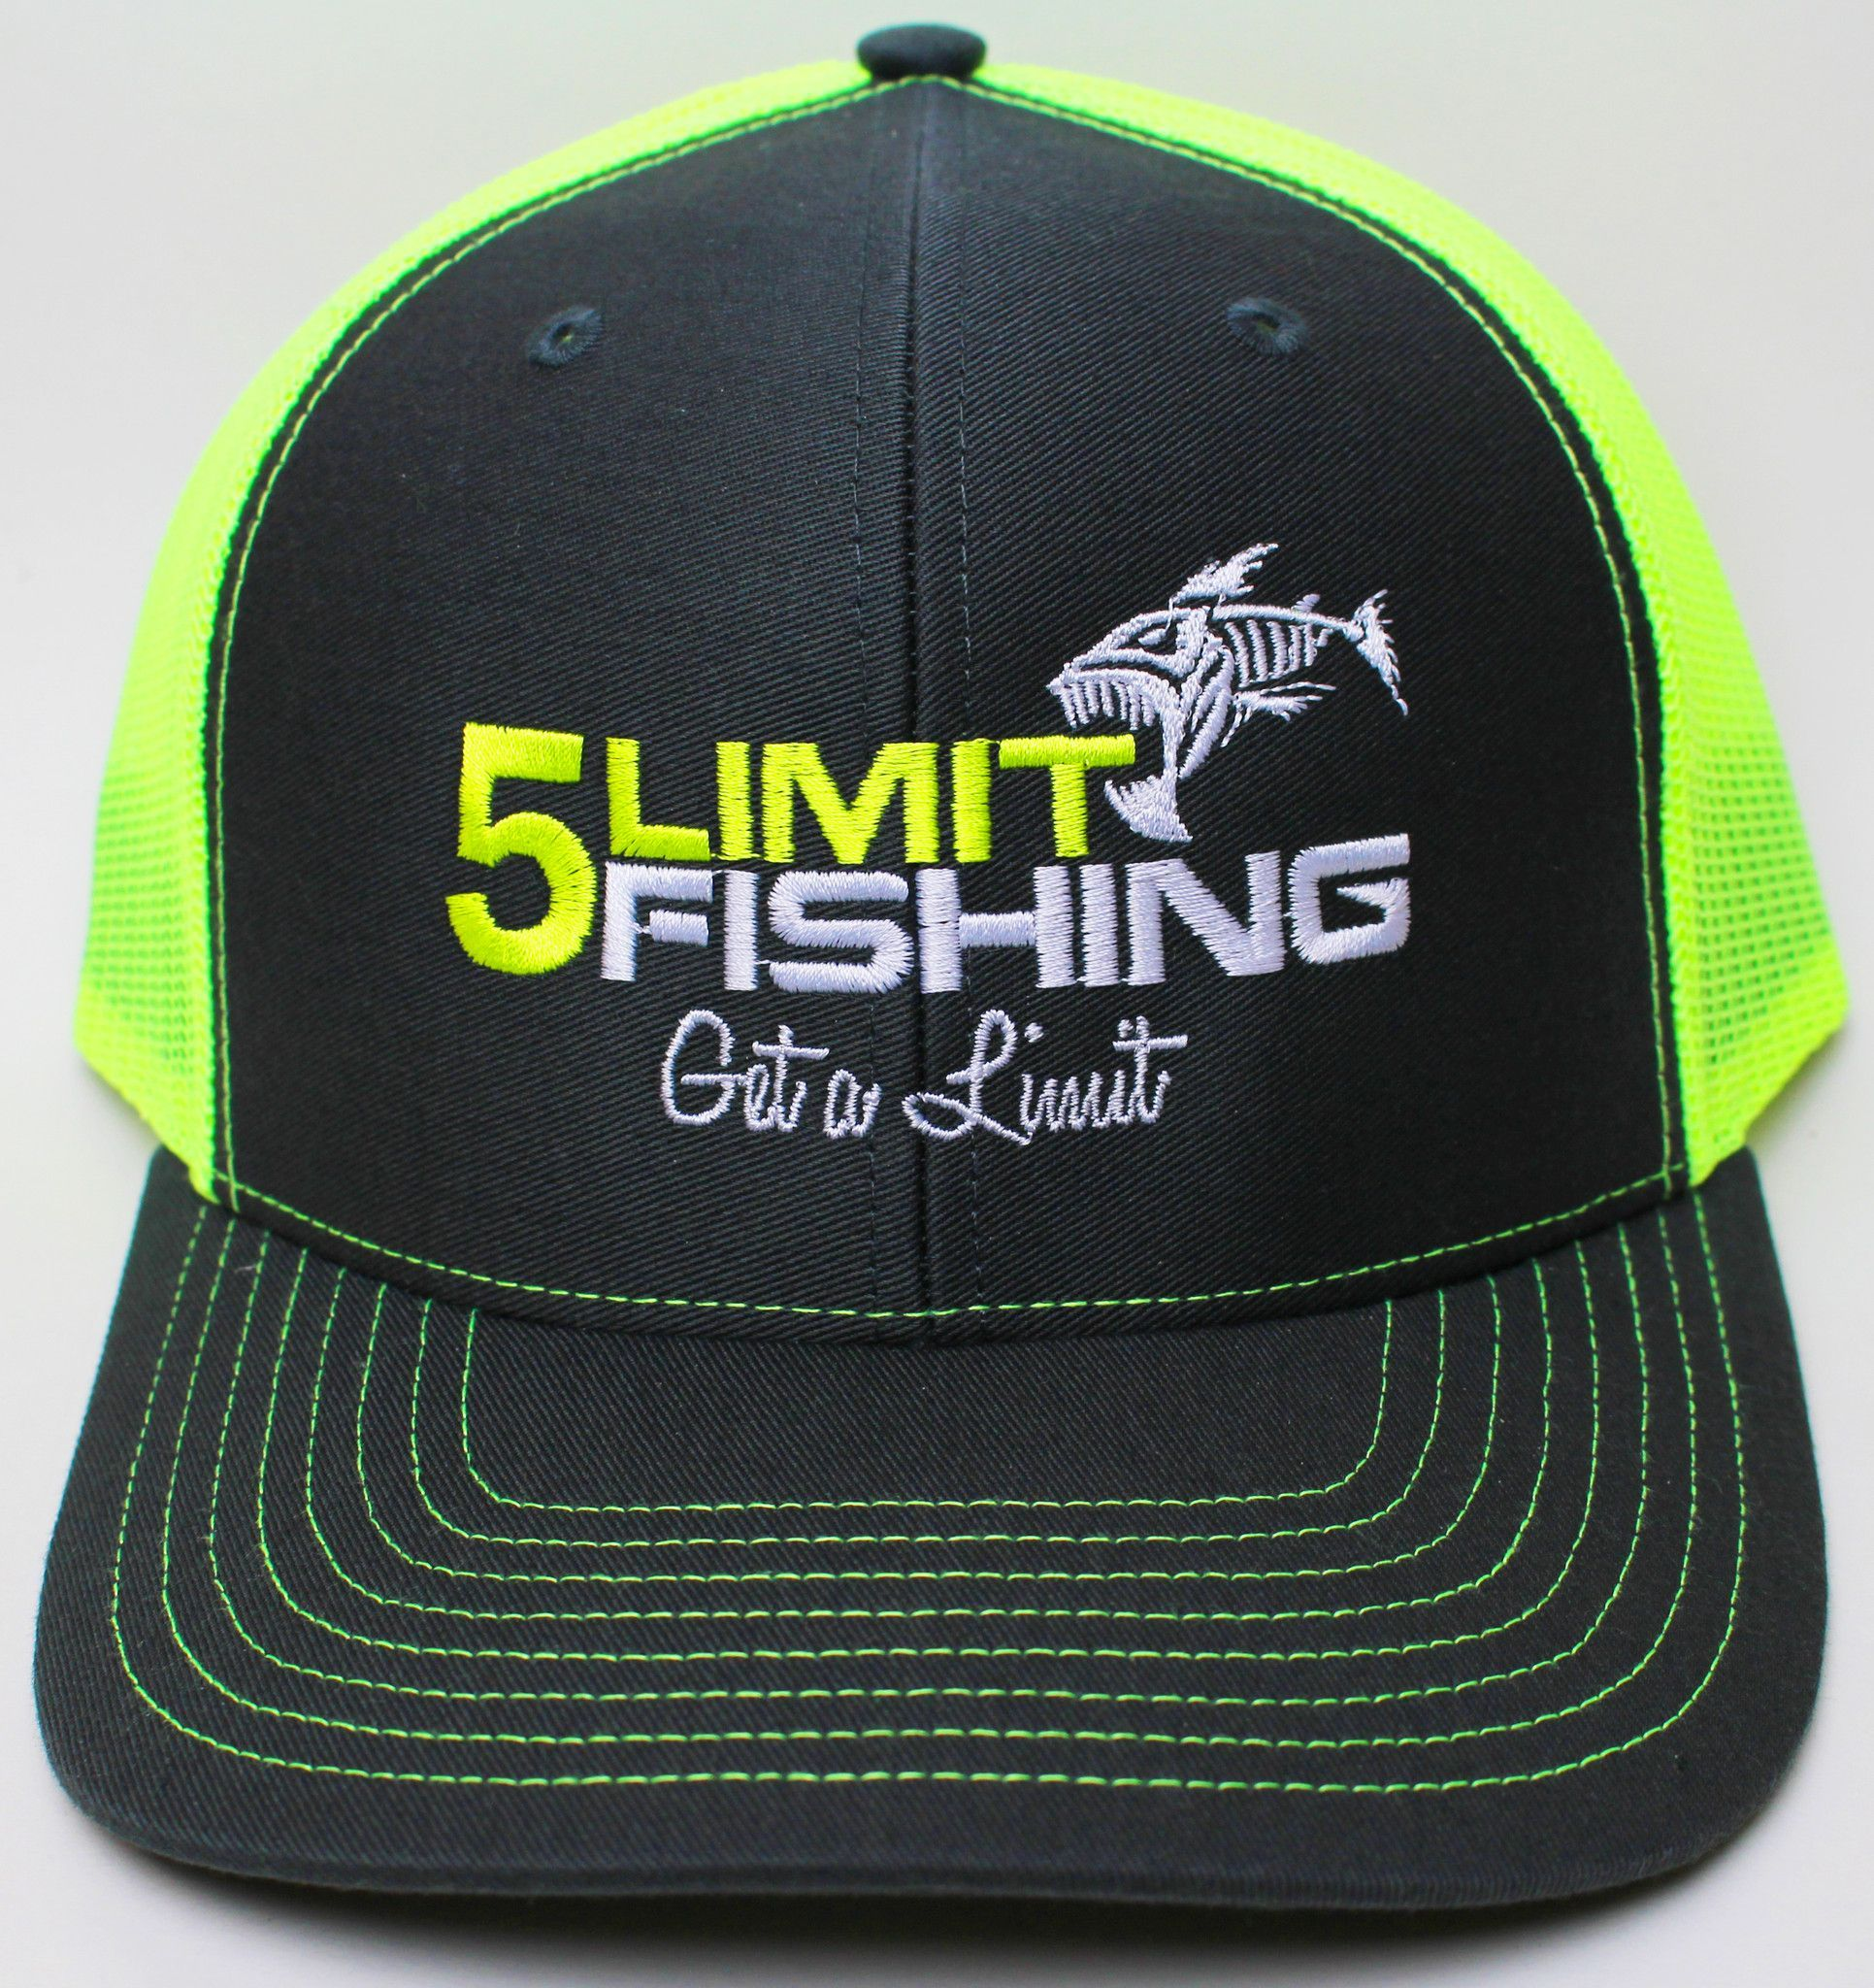 71ec4910 Show The World Your Passion with this super sharp 5Limit Fishing charcoal  gray/neon yellow trucker style hat with a white mesh back.